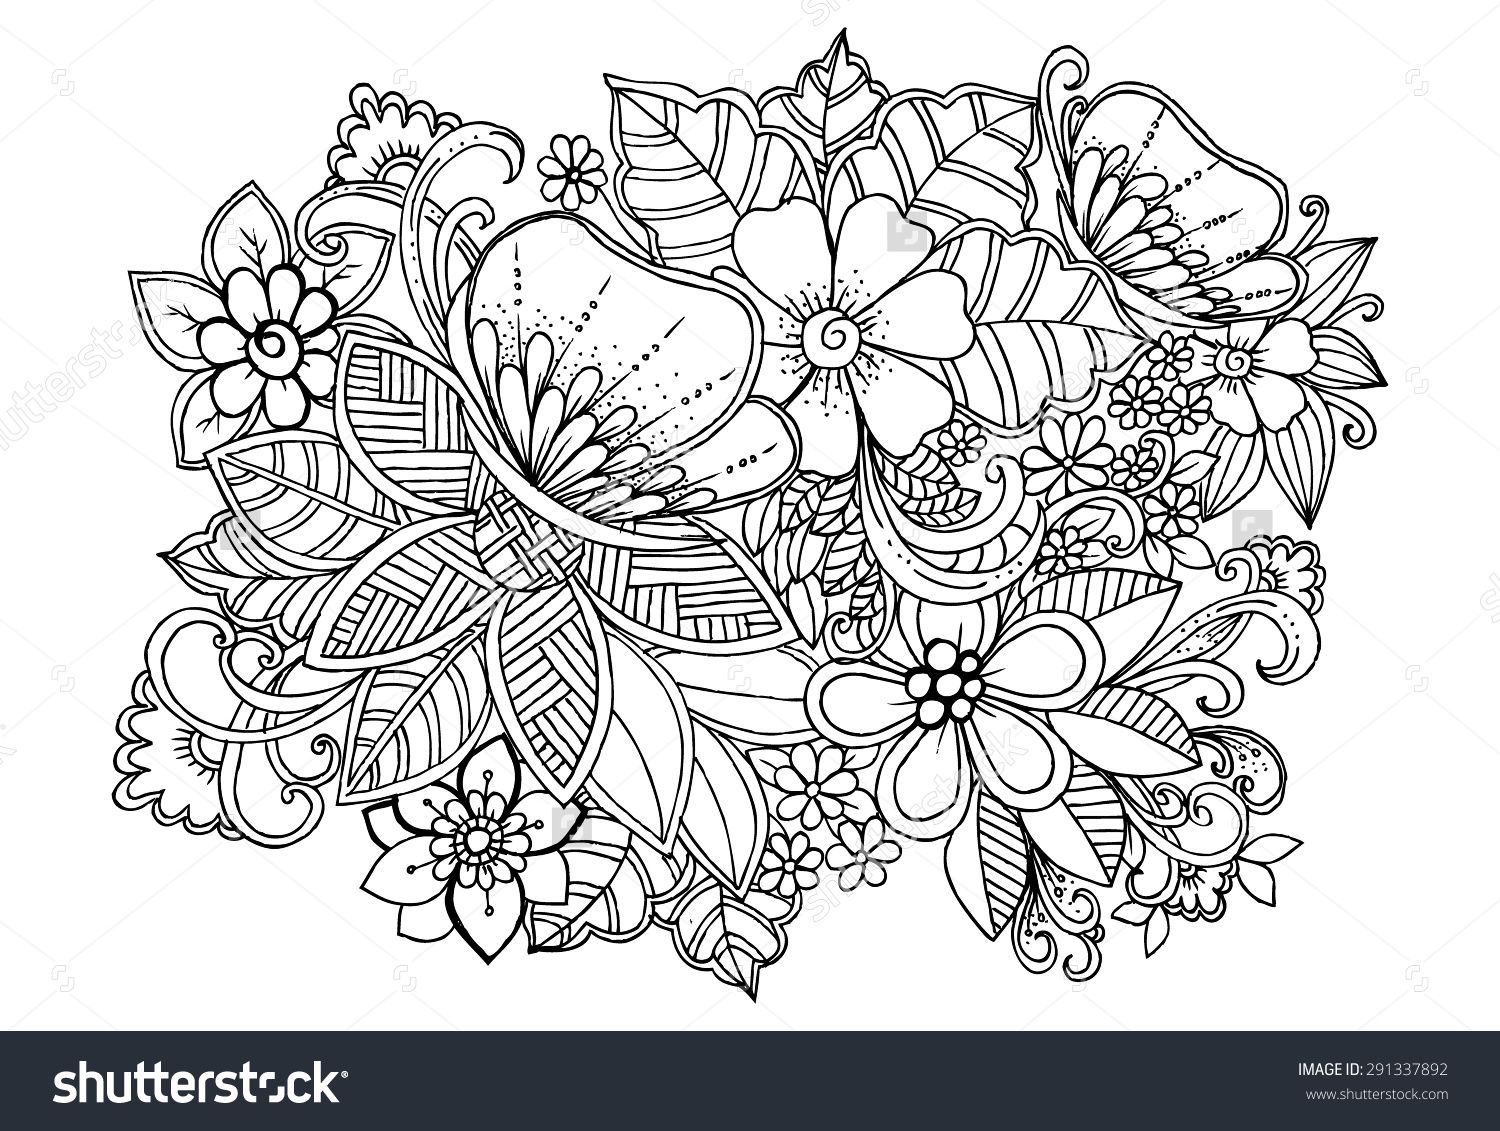 flower zentangle designs - Google Search | My Zentangle Board ...